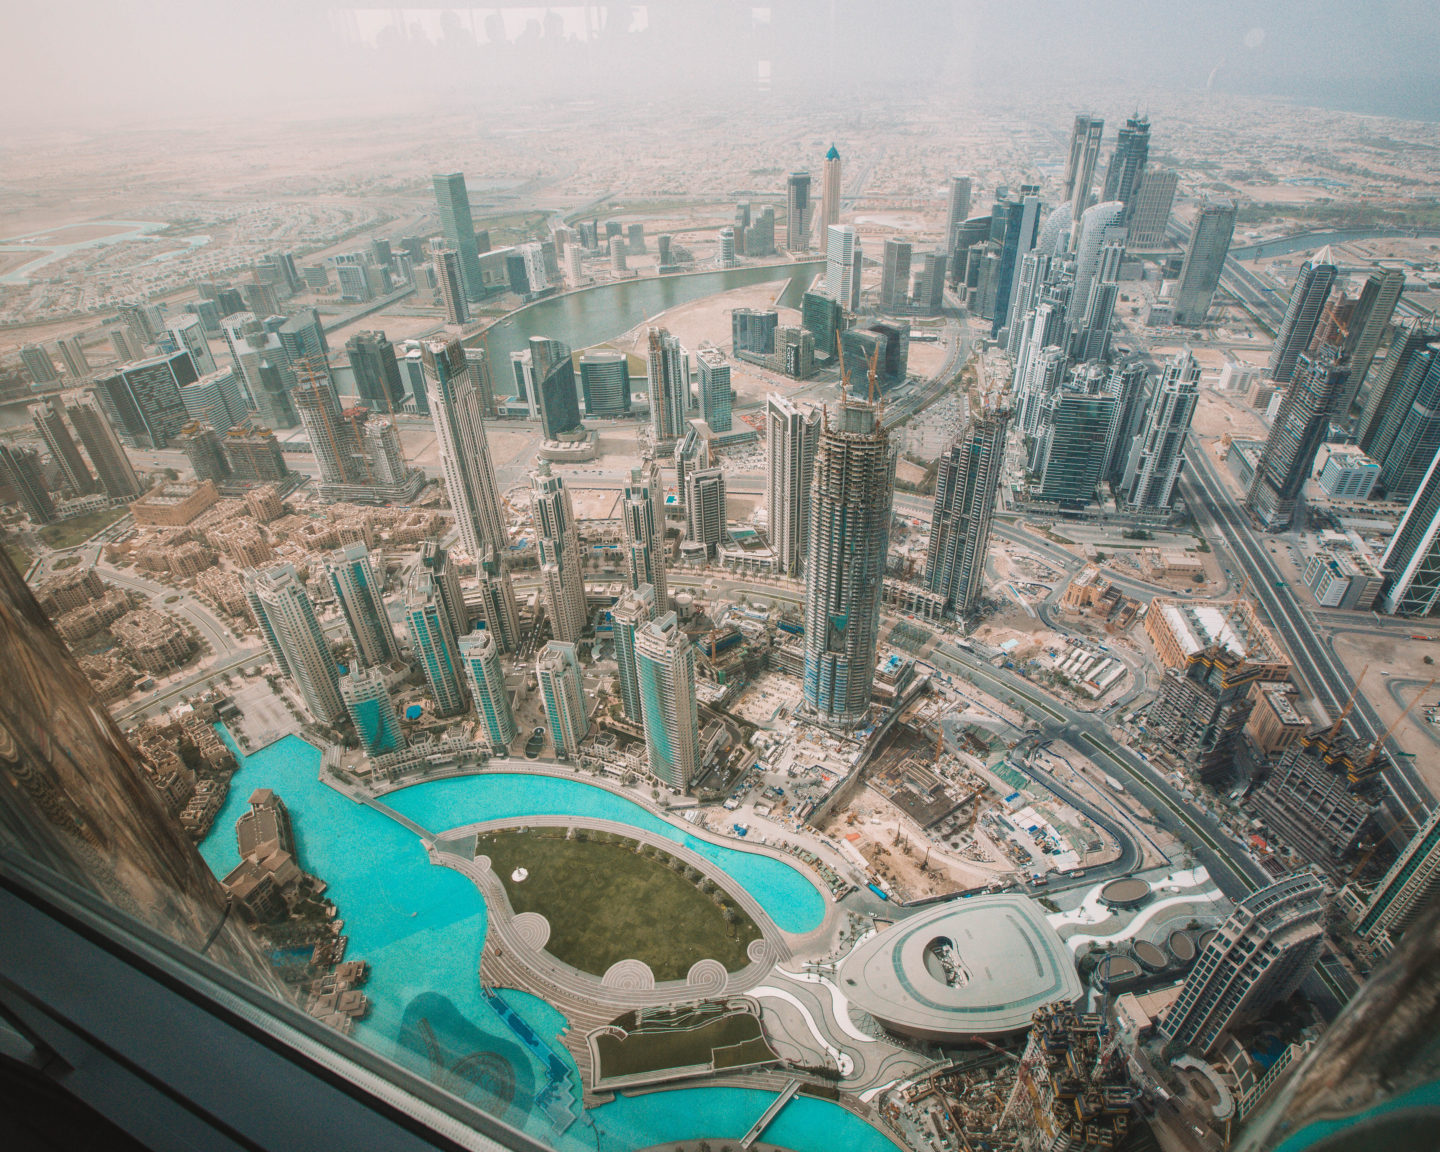 The view from the observation deck at the Burj Khalifa in Dubai